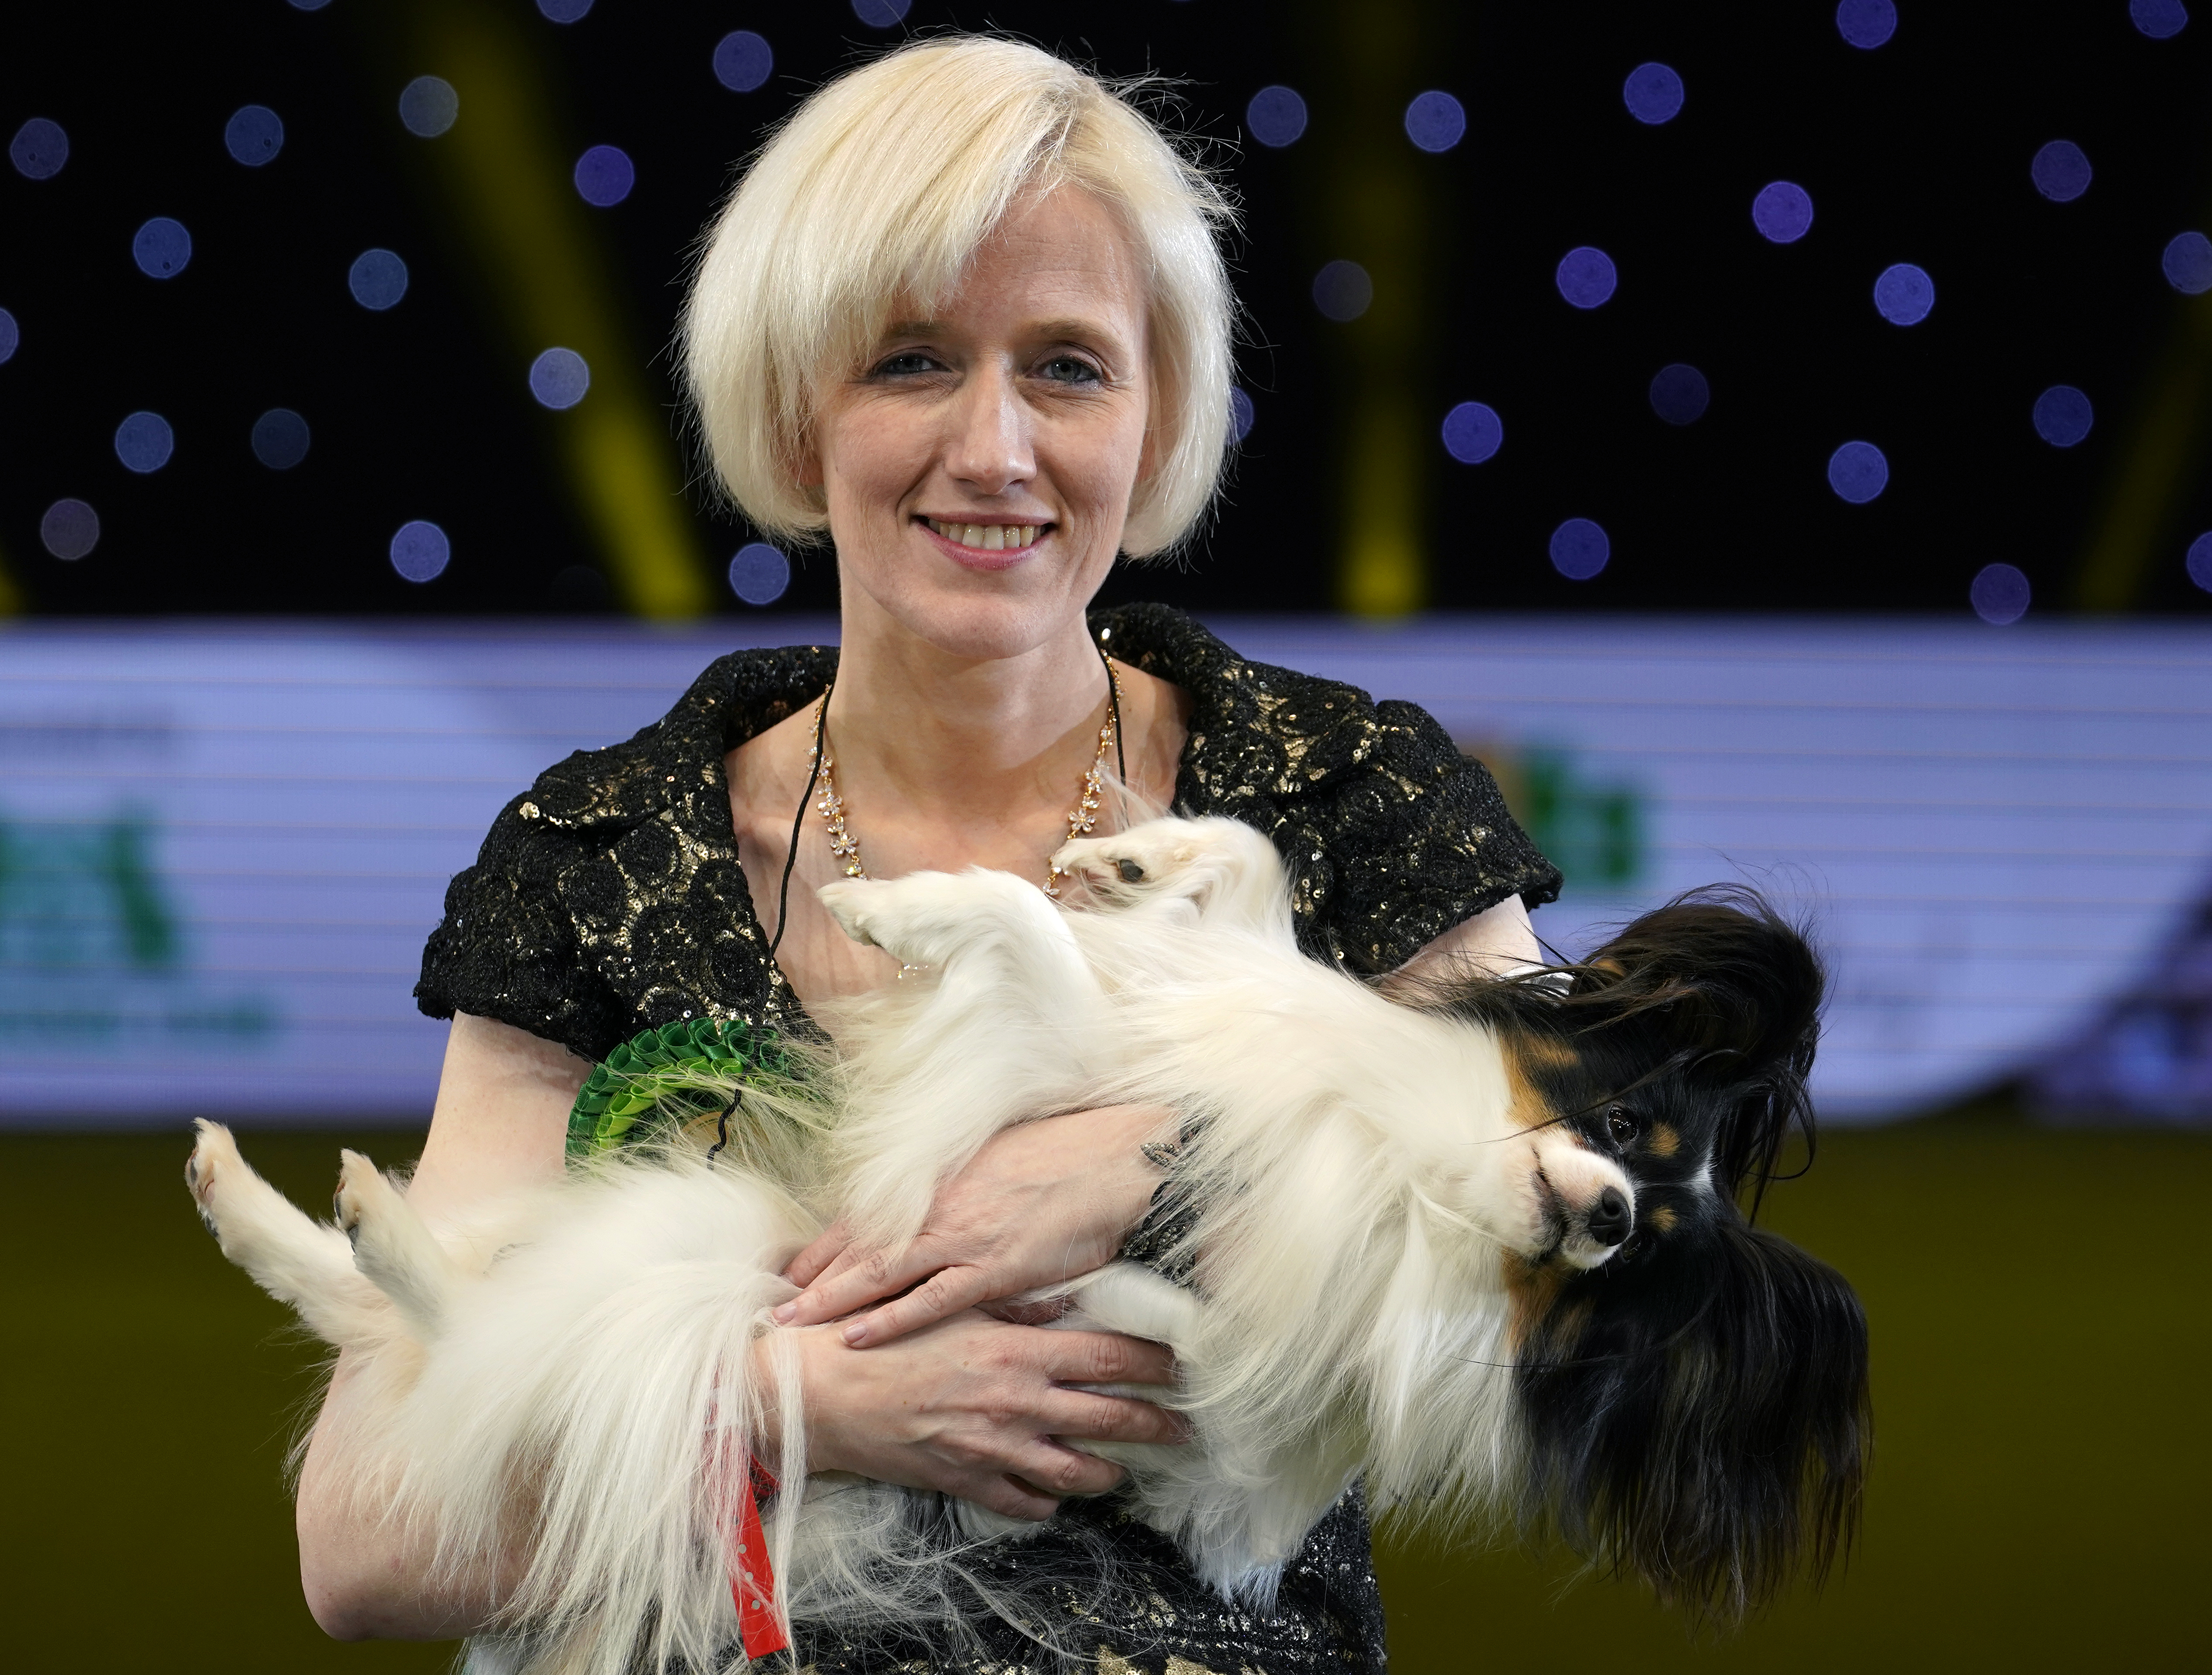 Dylan, a Papillon from Belgium, and owner Kathleen Roosens celebrate after winning Best in Show on the last day of Crufts Dog Show at the National Exhibition Centre on March 10, 2019 in Birmingham, England. .